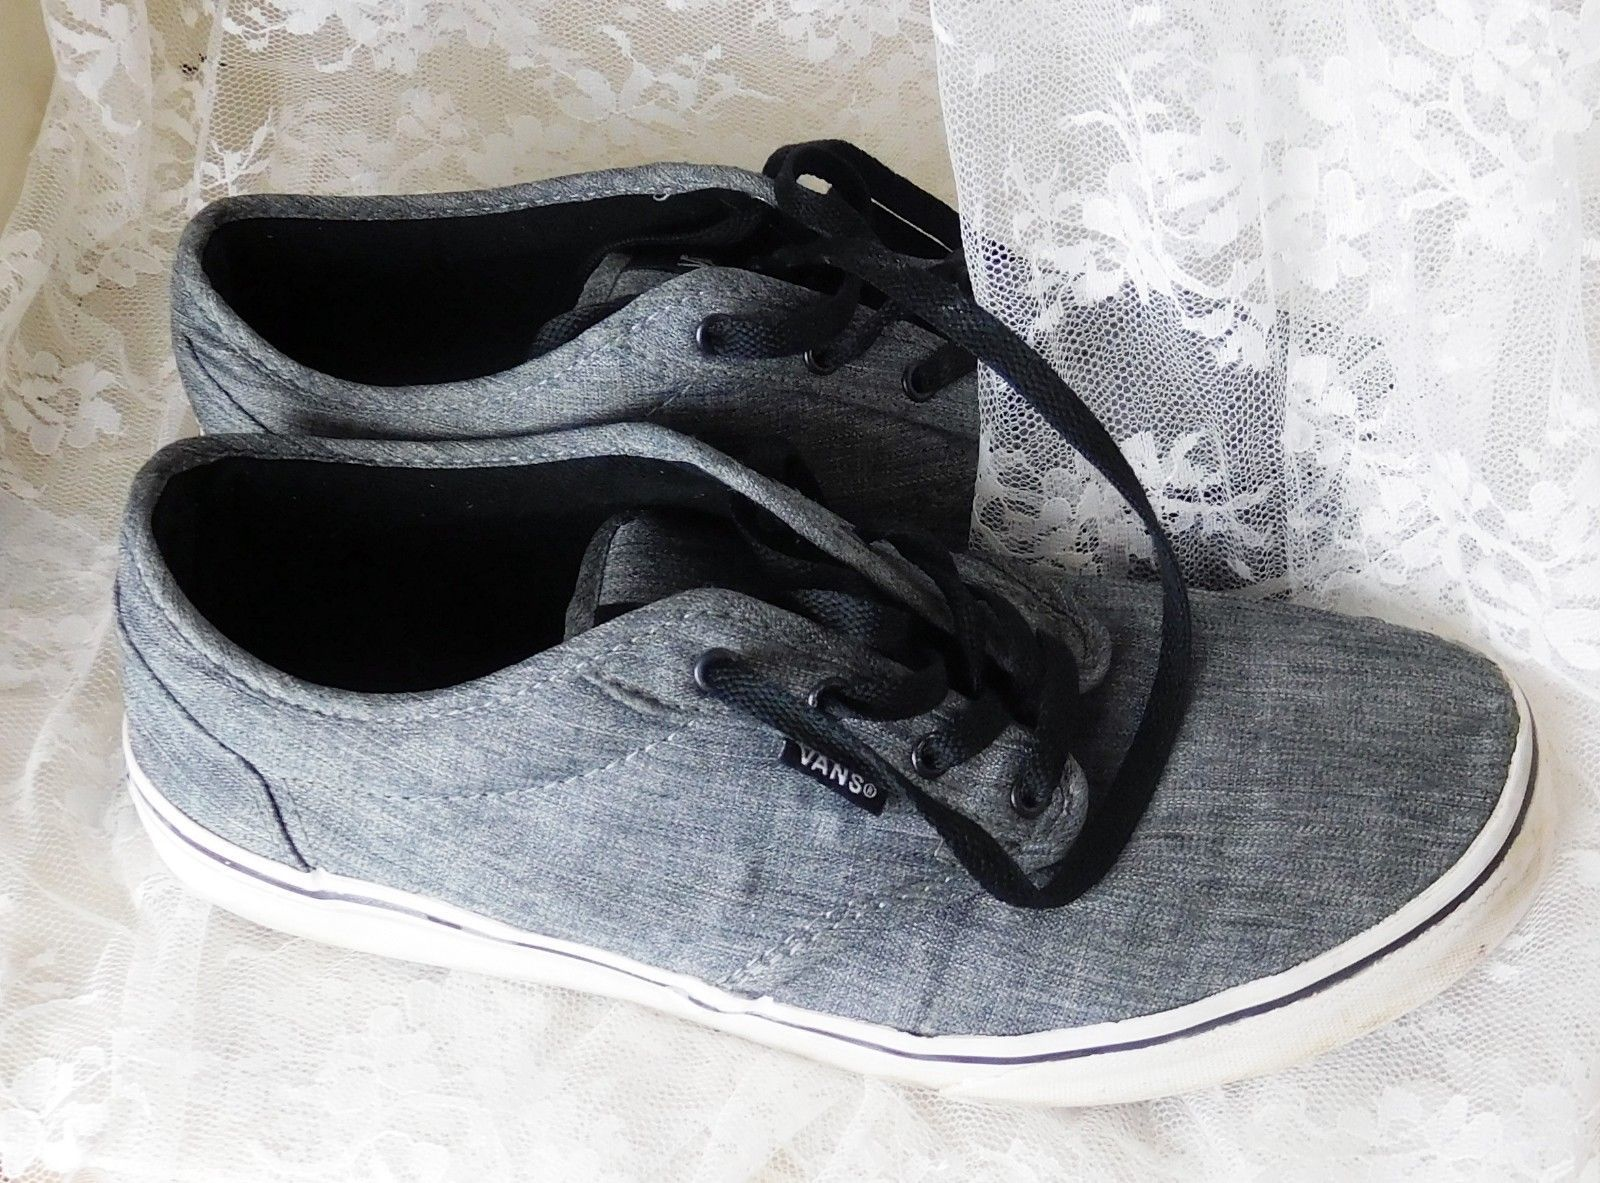 447fd7348a Vans Off The Wall Men s Sneakers Size 7 Gray and 50 similar items